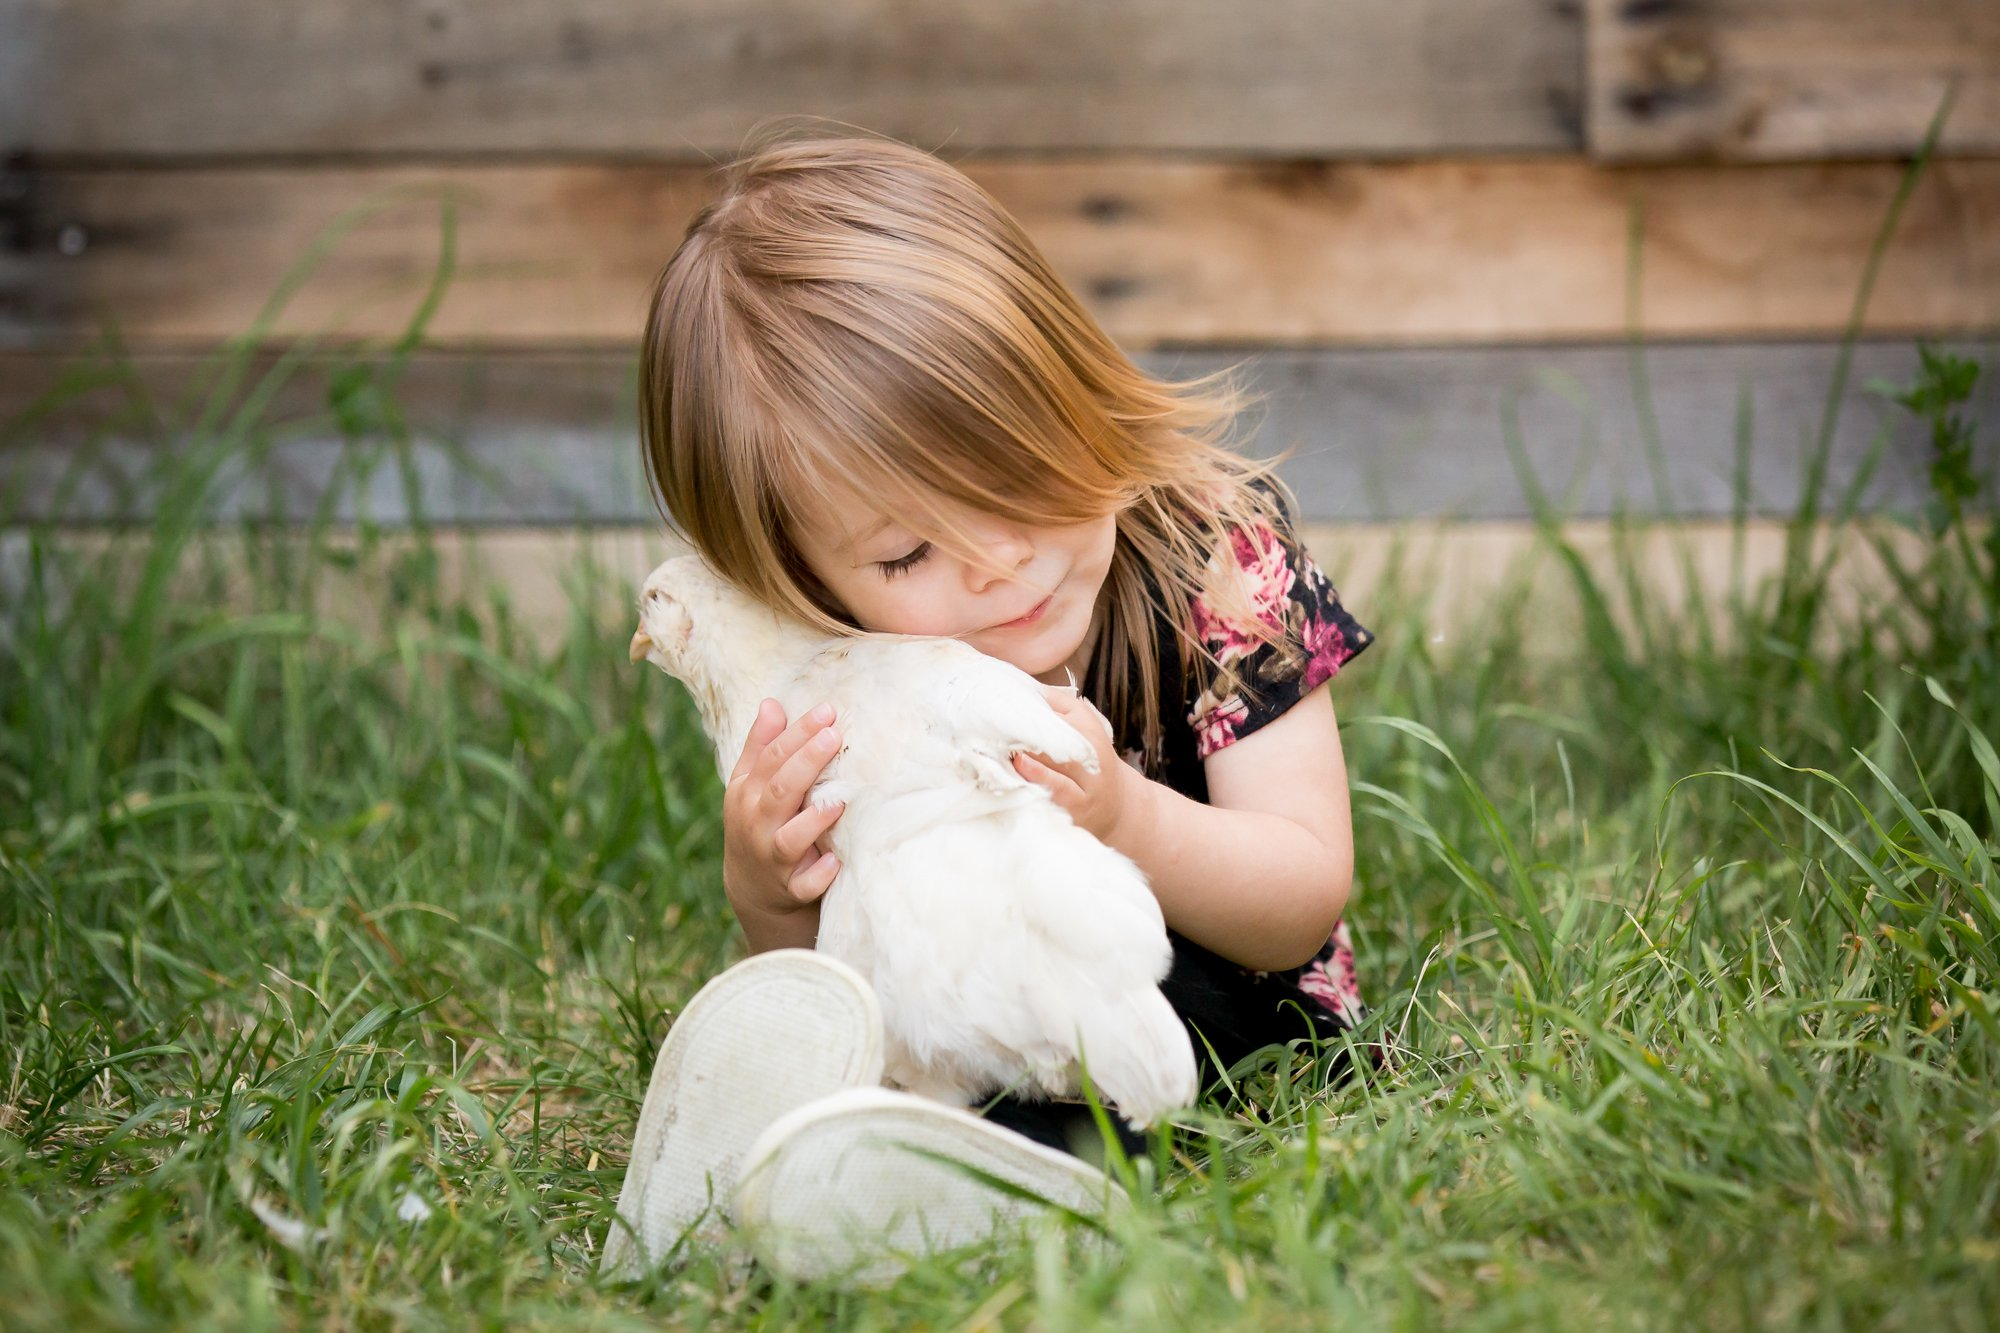 A little girl snuggling with a white chicken